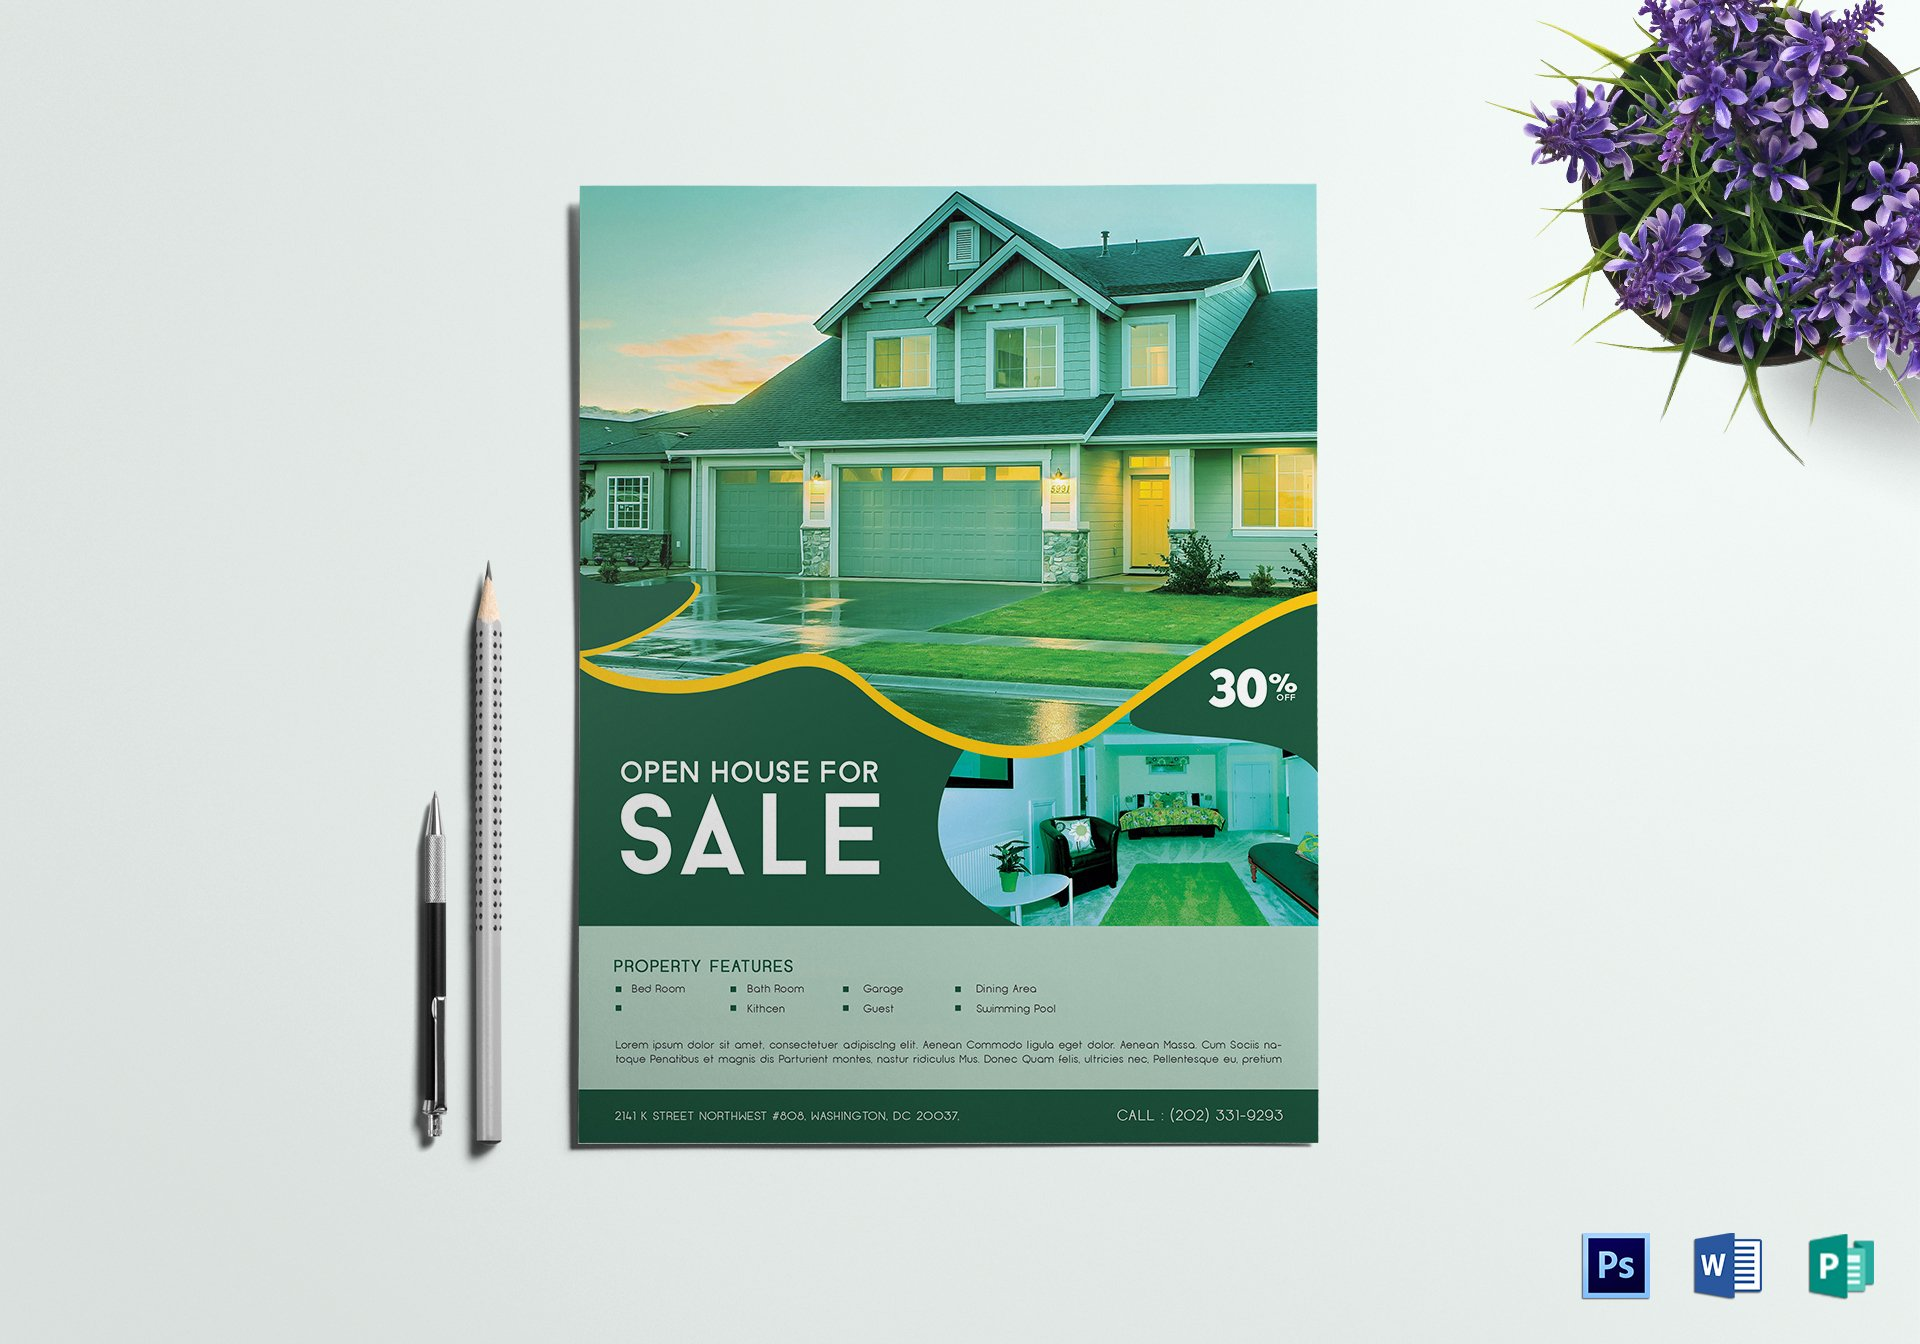 Open House Flyer Template Publisher Elegant Open House Sale Flyer Design Template In Word Psd Publisher